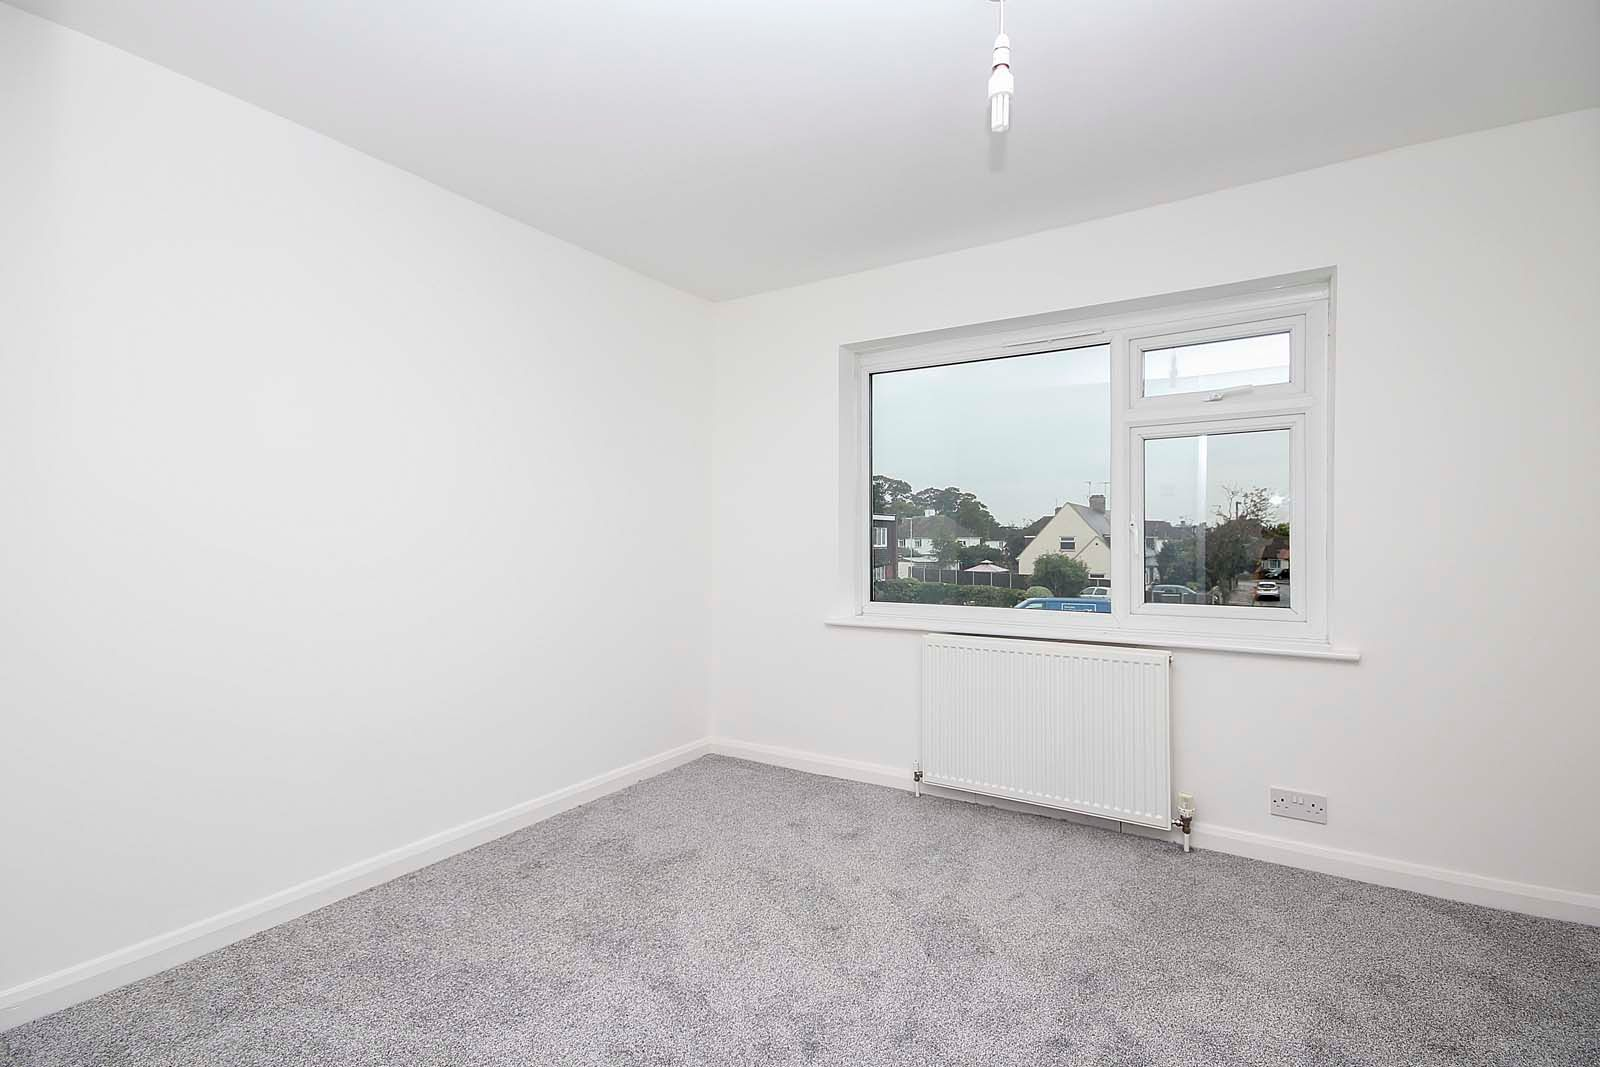 2 bed house for sale in Church Way COMP Jan 2019 8